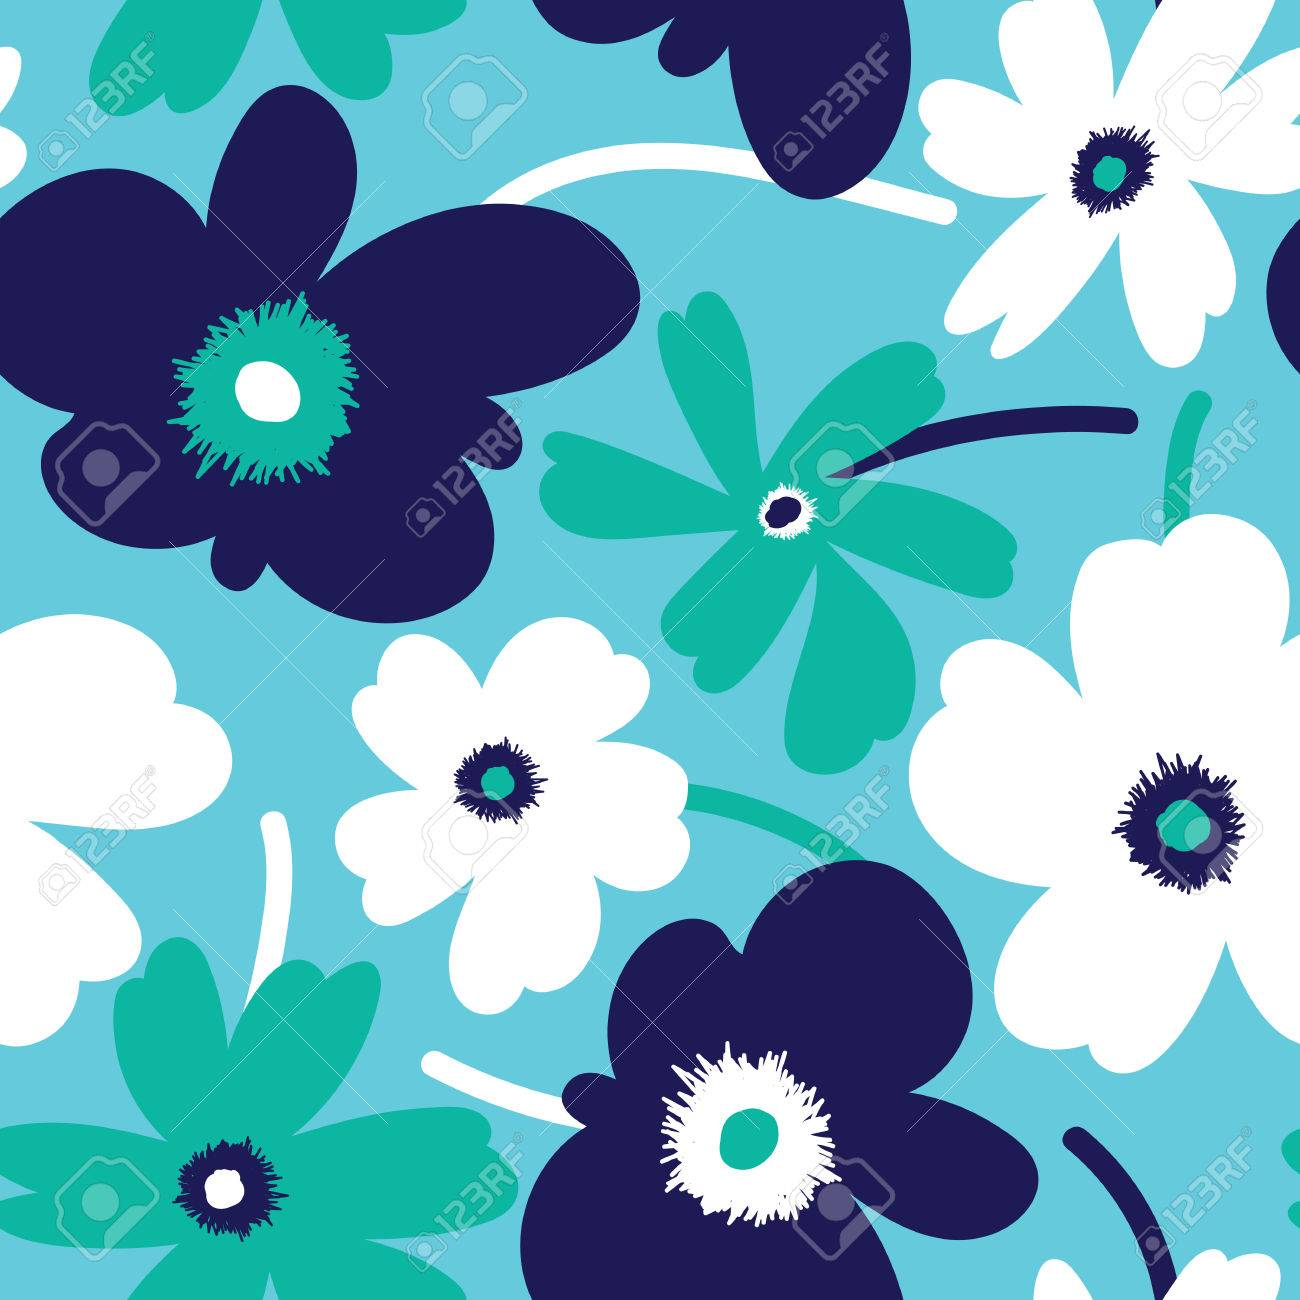 Elagant and simplistic seamless pattern design, repeating background with spring flowers for web and print use - 63414810